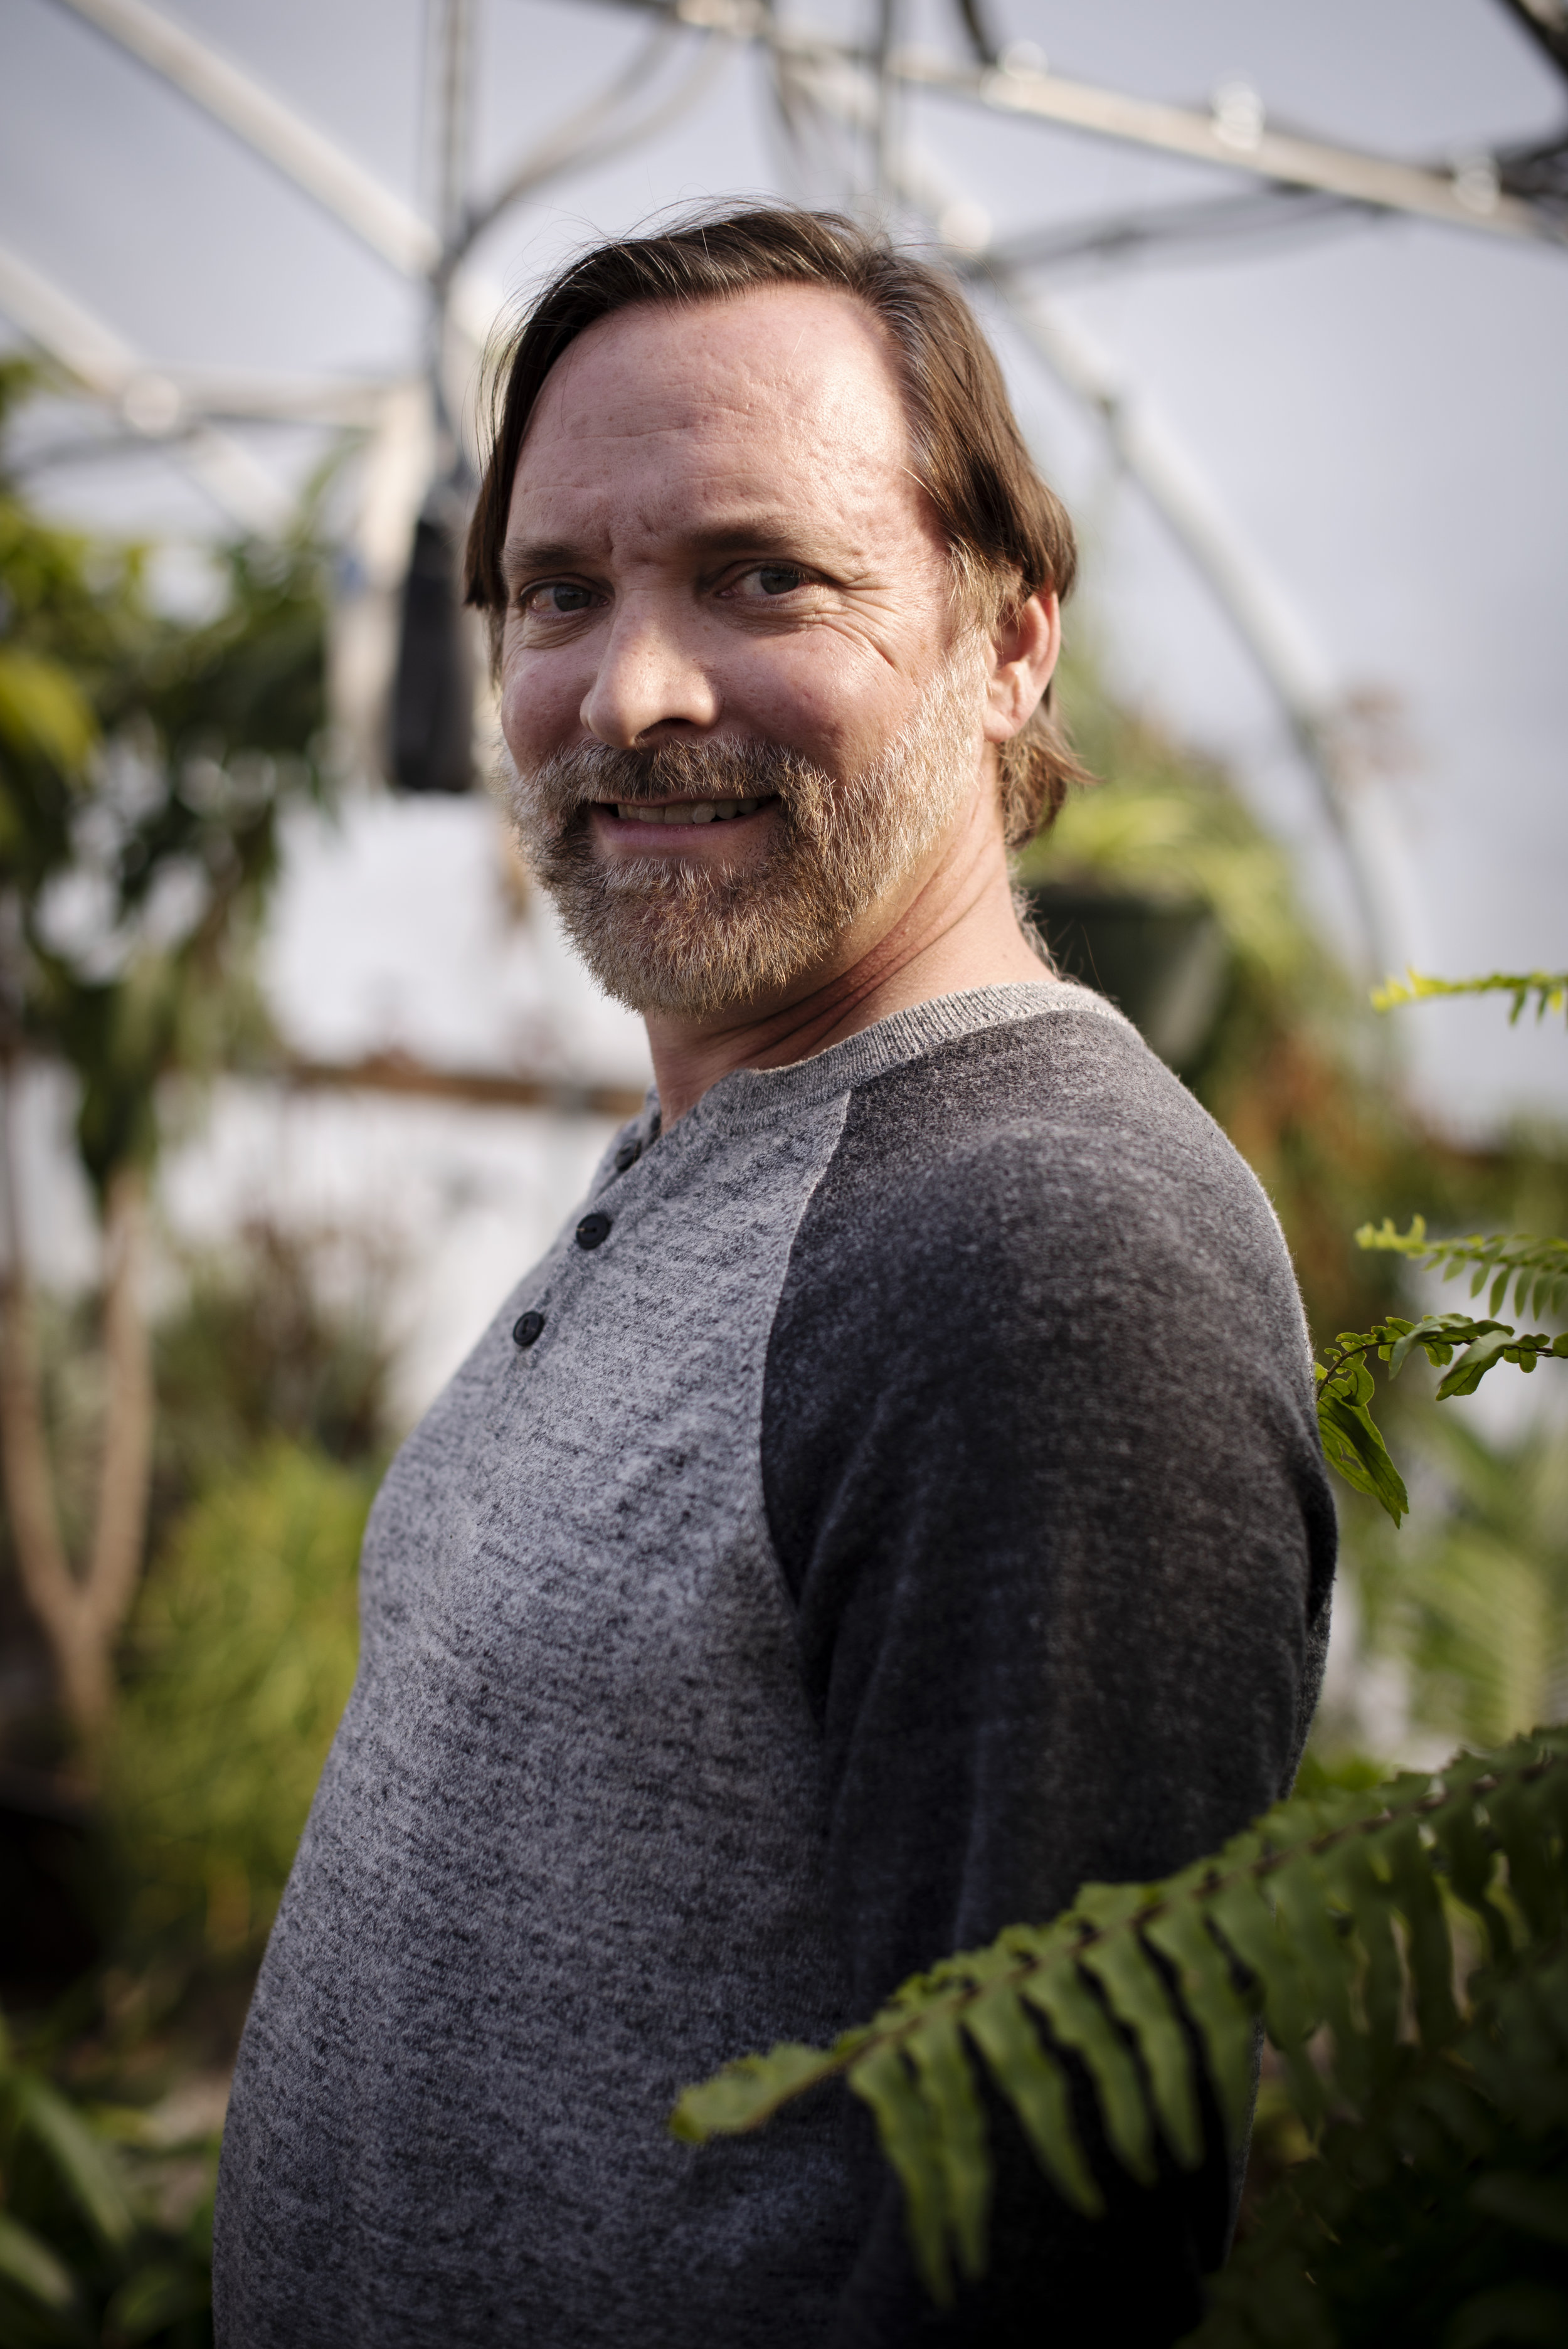 """Dennis Williams is a horticulturalist at the Baker Arboretum in Bowling Green. """"The thing about my job is [that] you get the best of both worlds,"""" Williams said. """"You get to see something growing all year being a horticulturalist."""""""